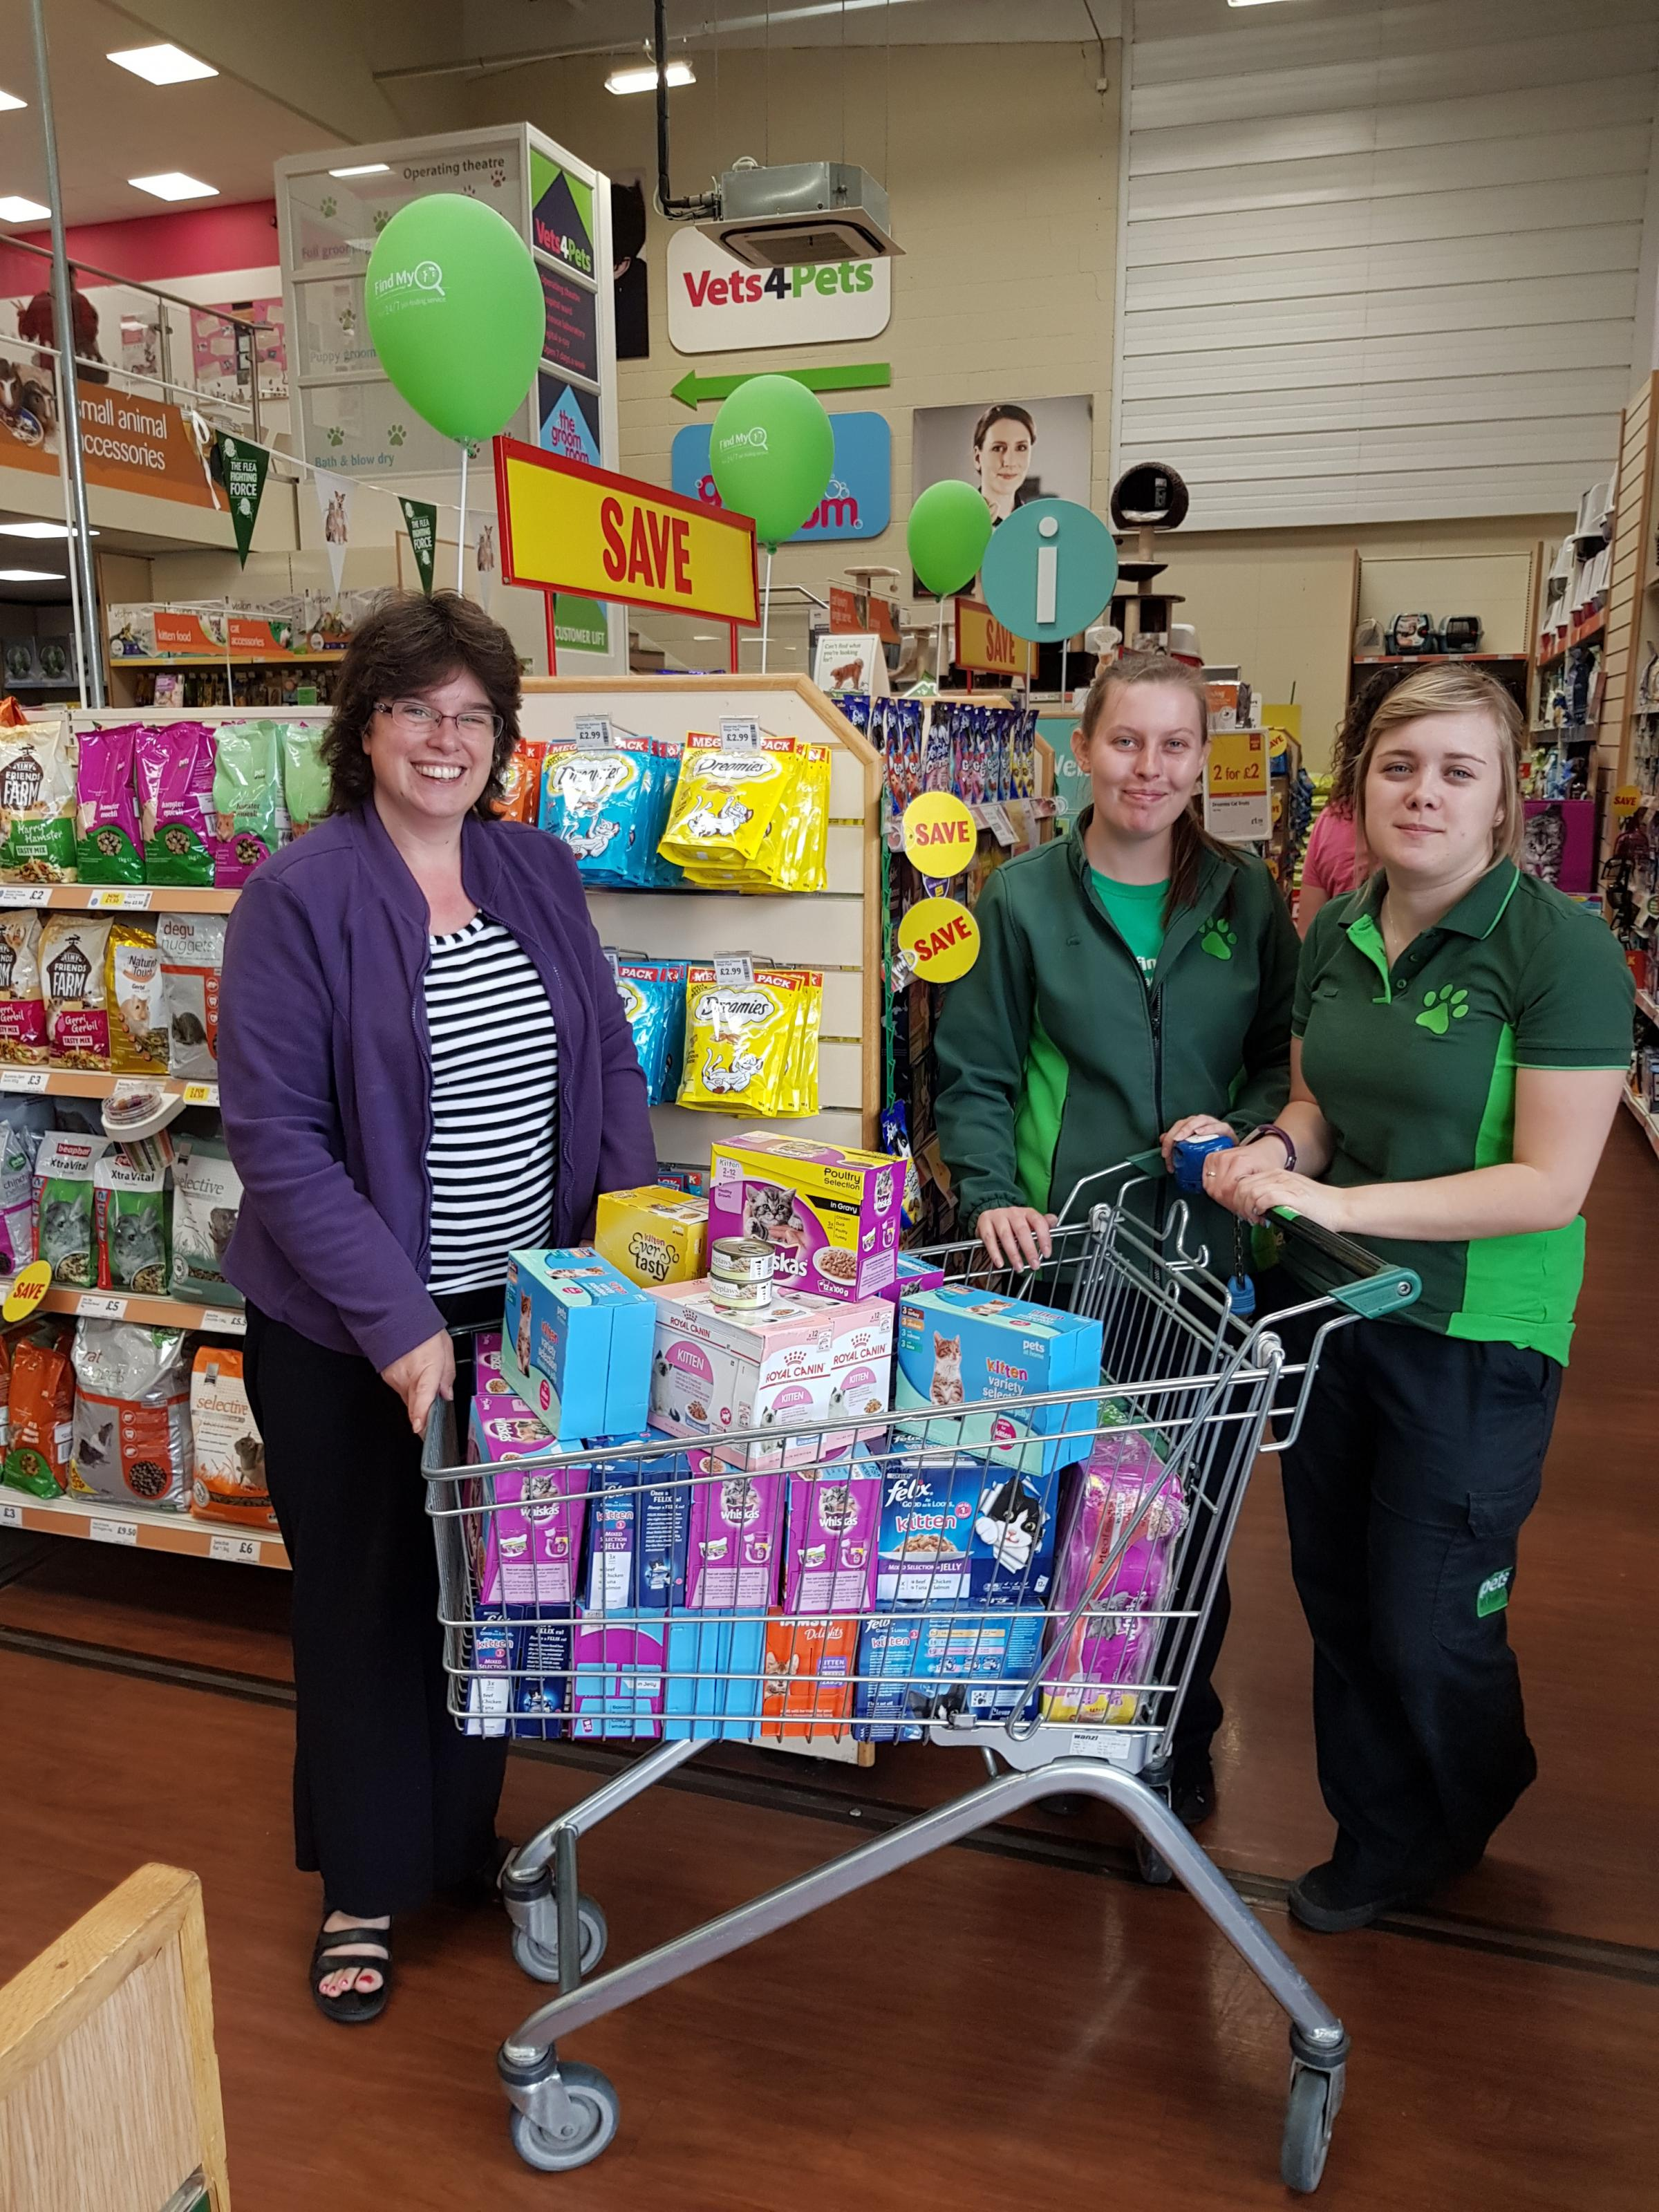 Evesham Pets At Home S Vip Scheme Is A Tasty Treat For Cats And Kittens From Evesham Cats Protection Worcester News